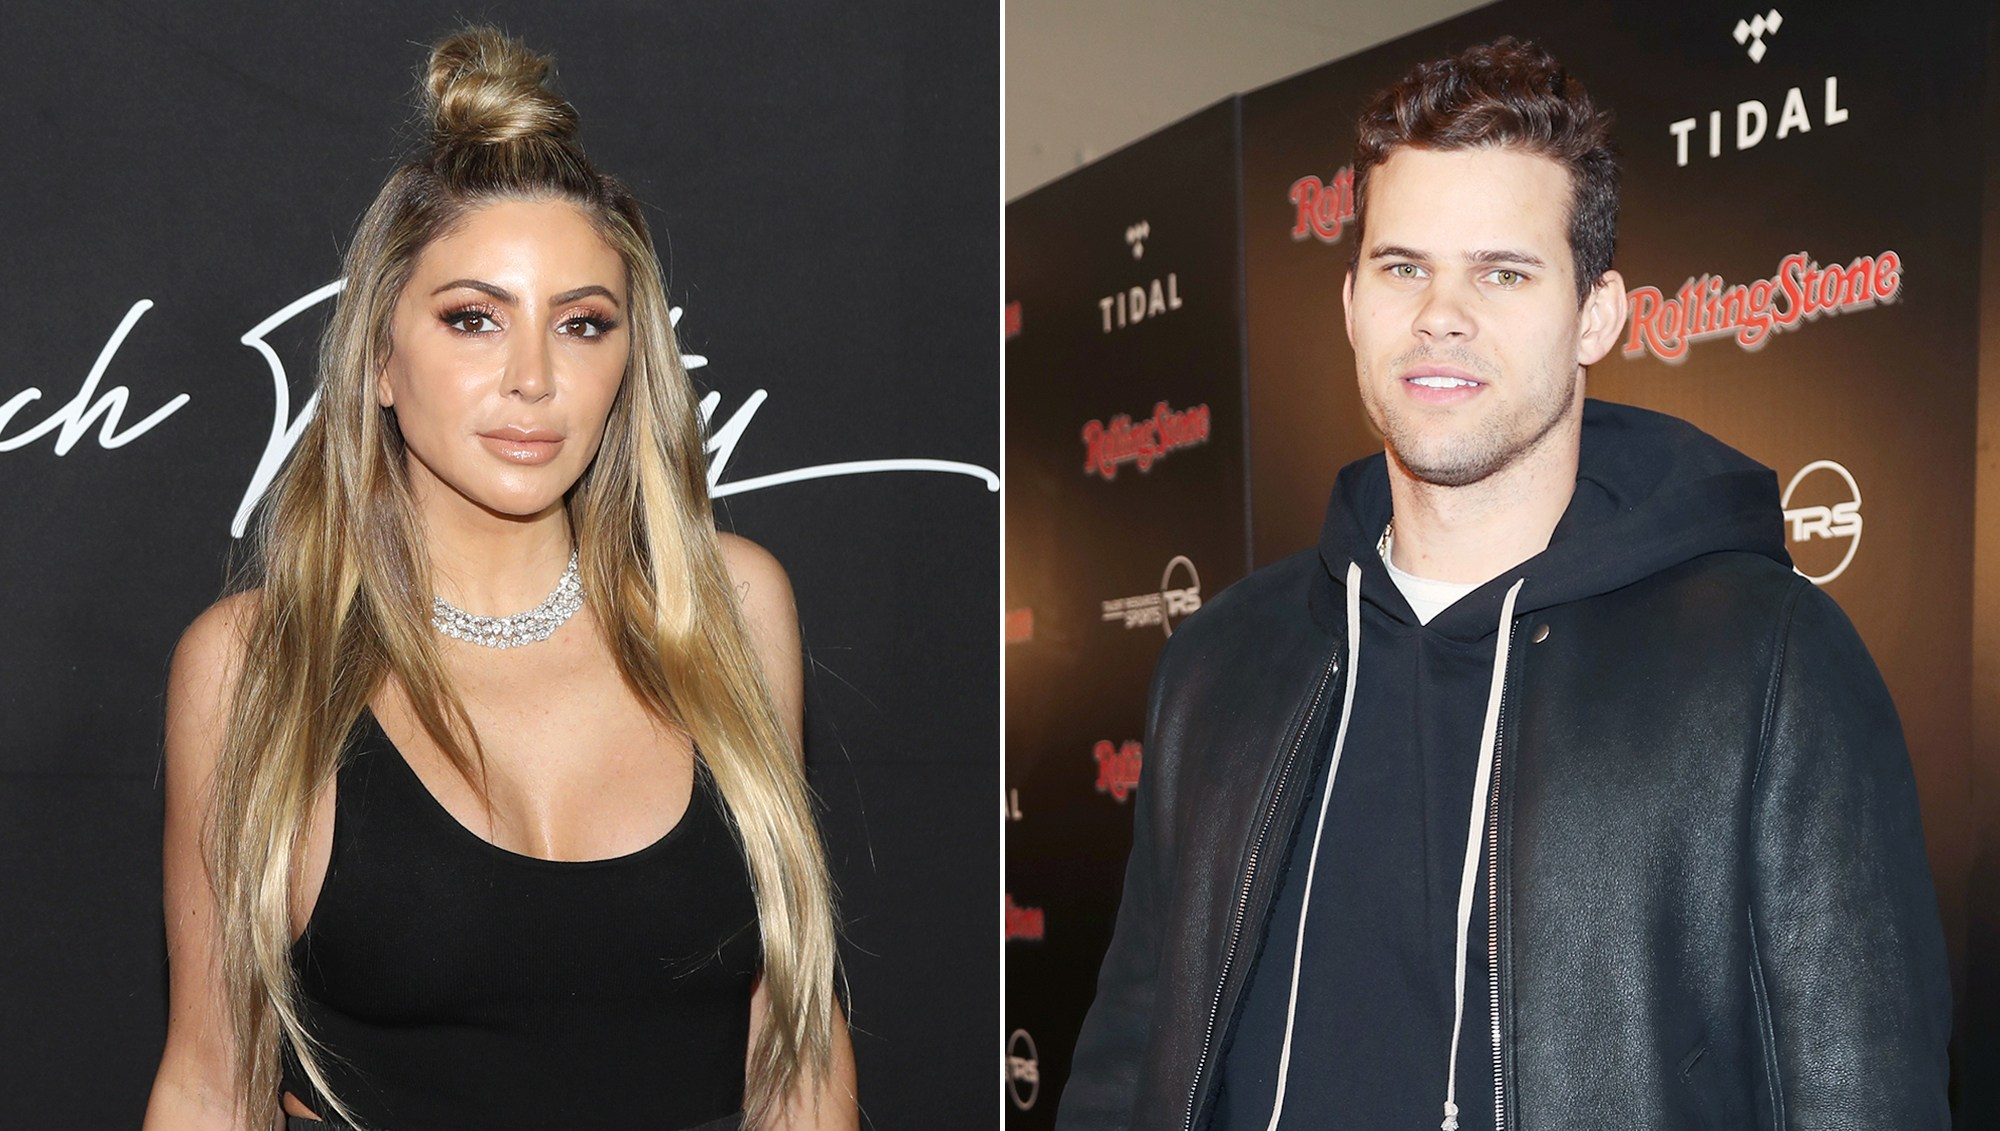 Larsa Pippen on Conversation With Kris Humphries